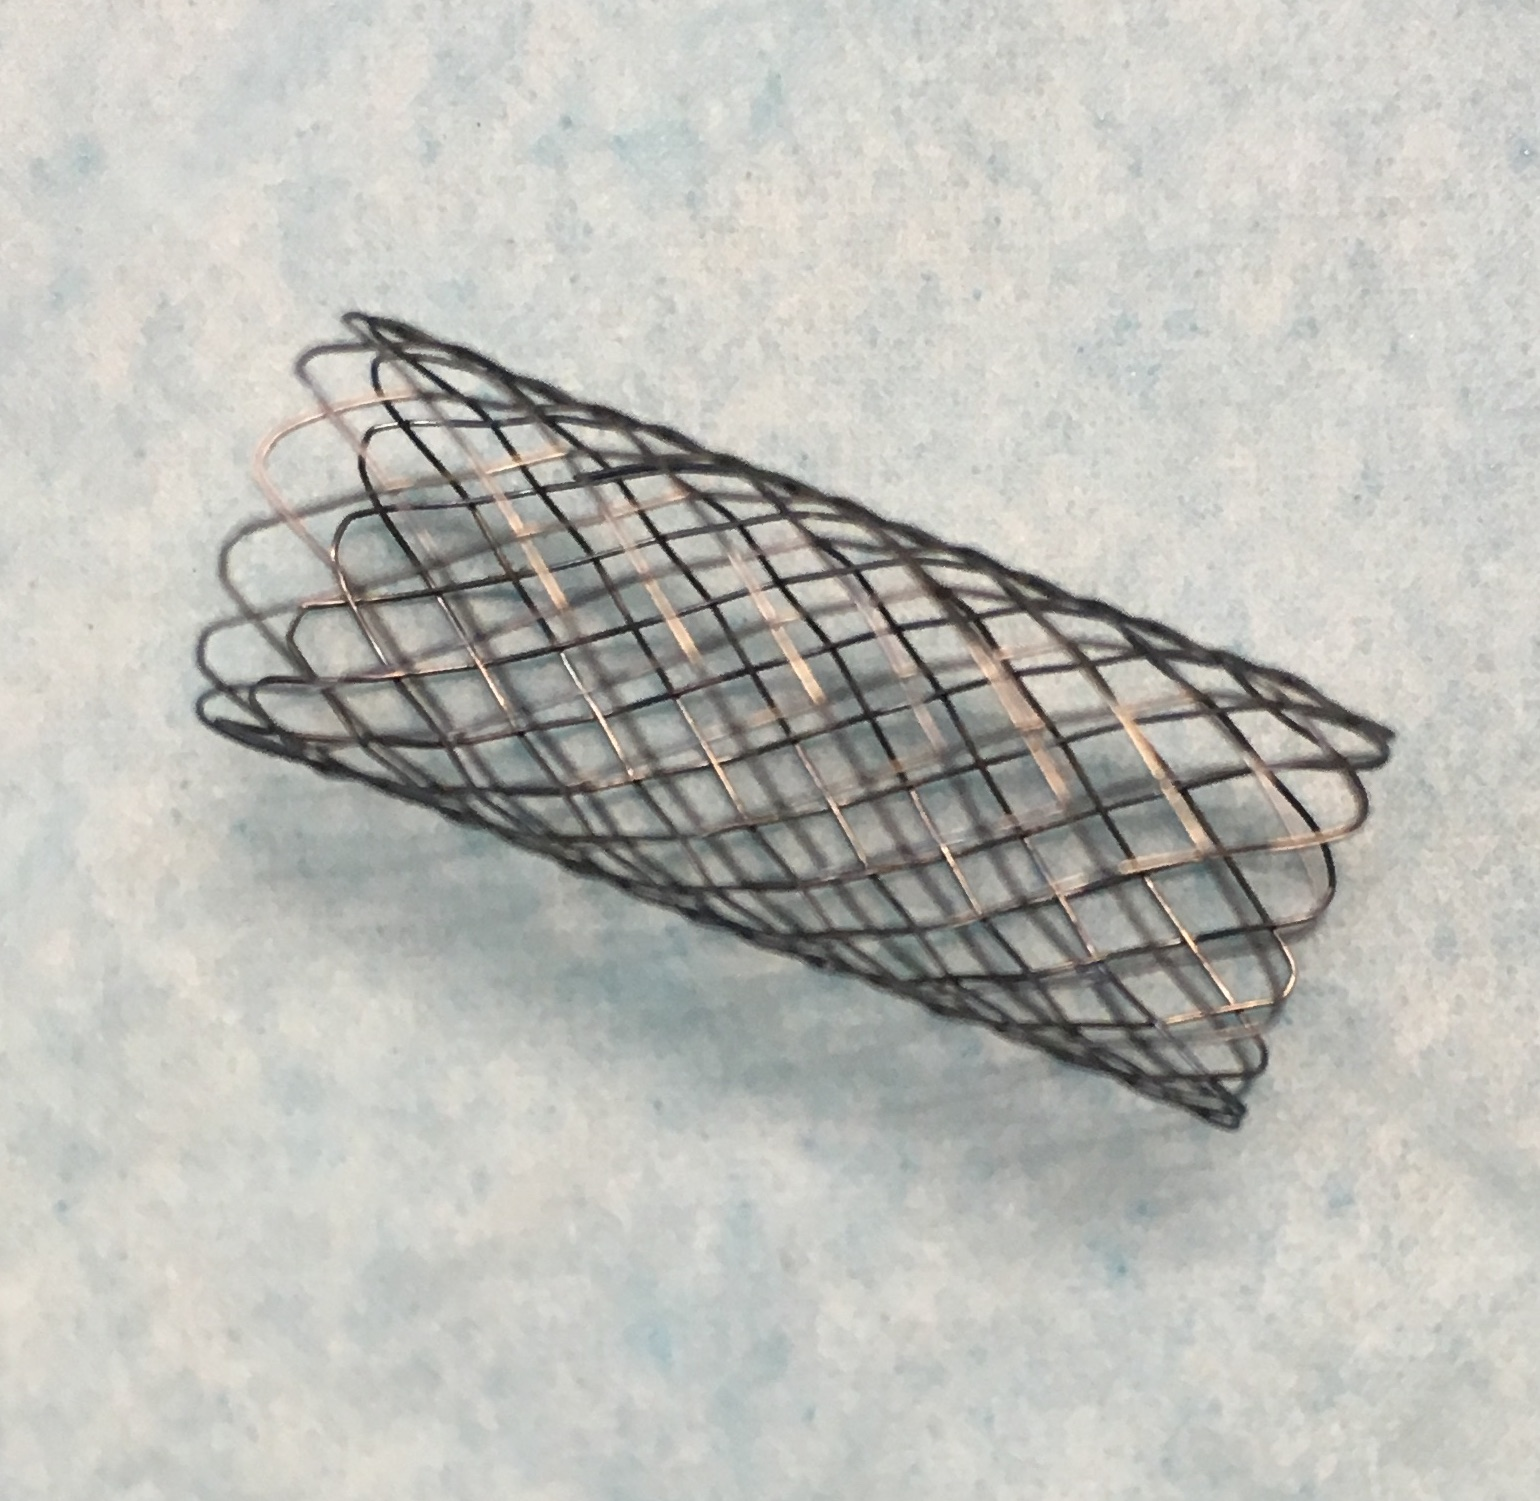 Straight Stent (Original design) Available for sale in multiple sizes    TO BUY CLICK HERE